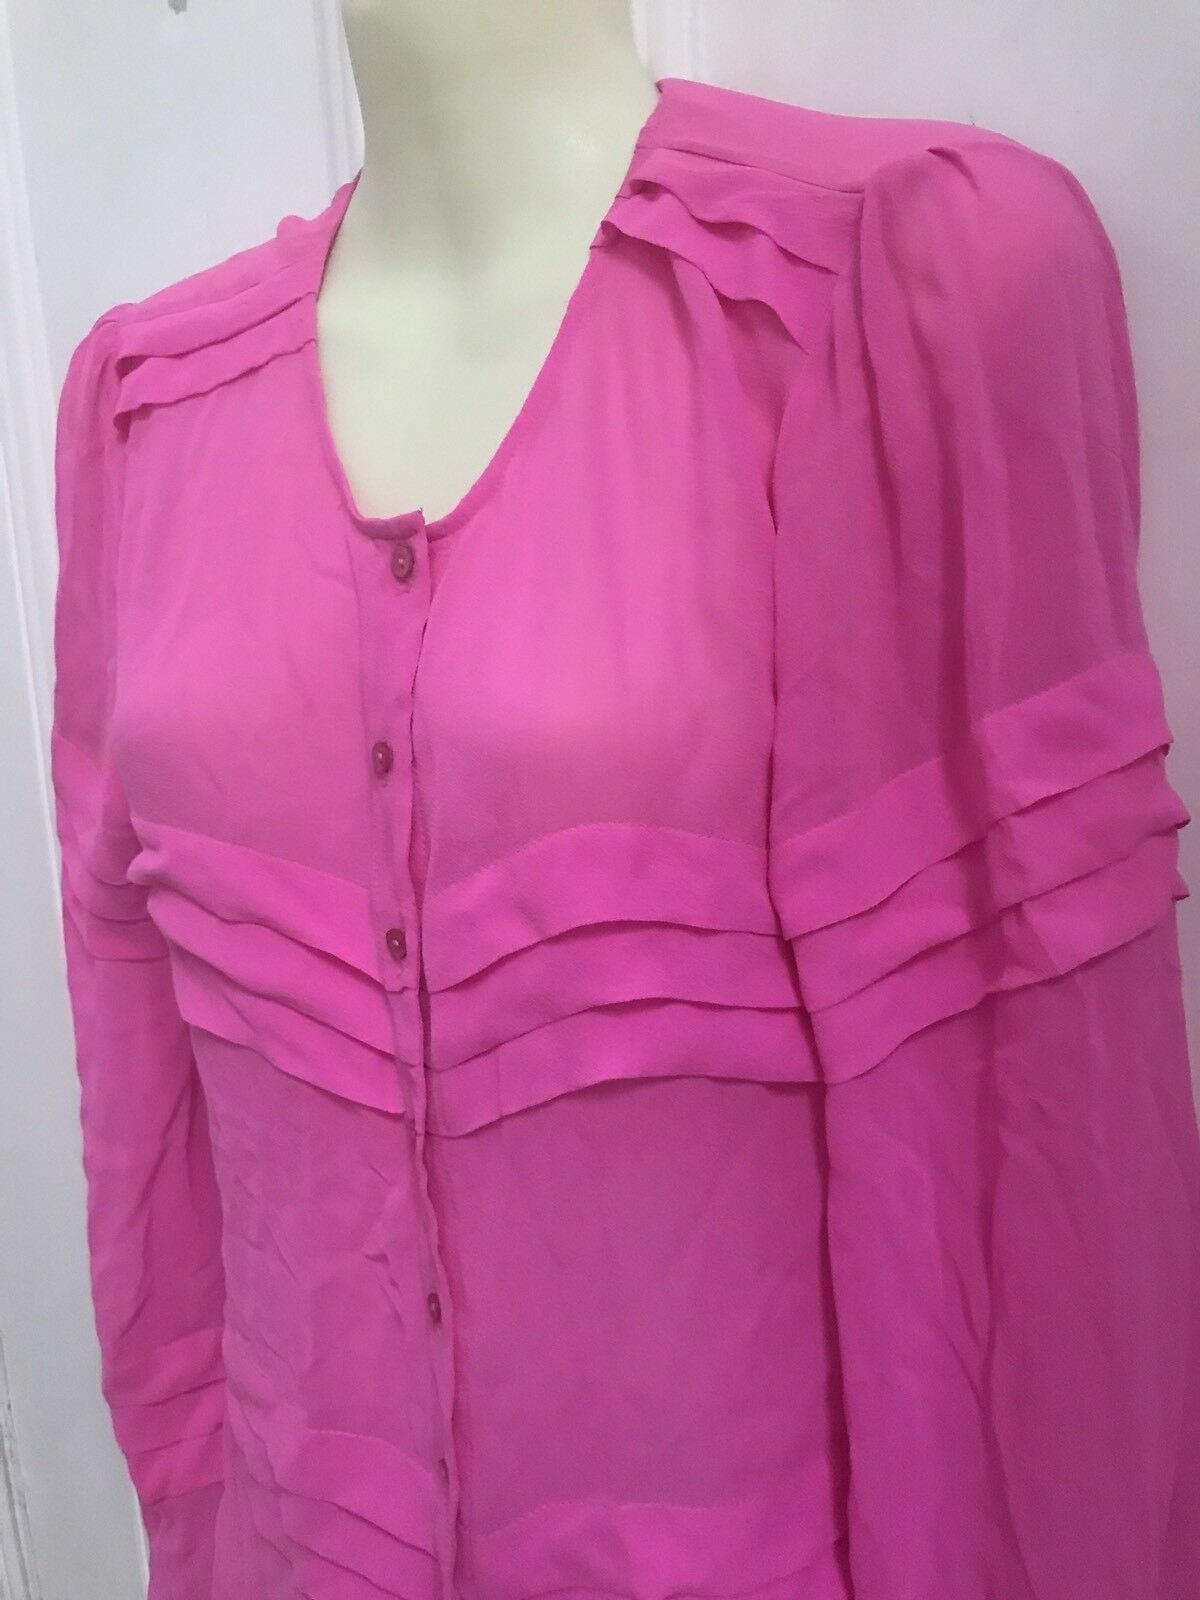 Tigerlily Shirt Hot Rosa Fuchsia Blouse Größe AU 10 Pure Silk